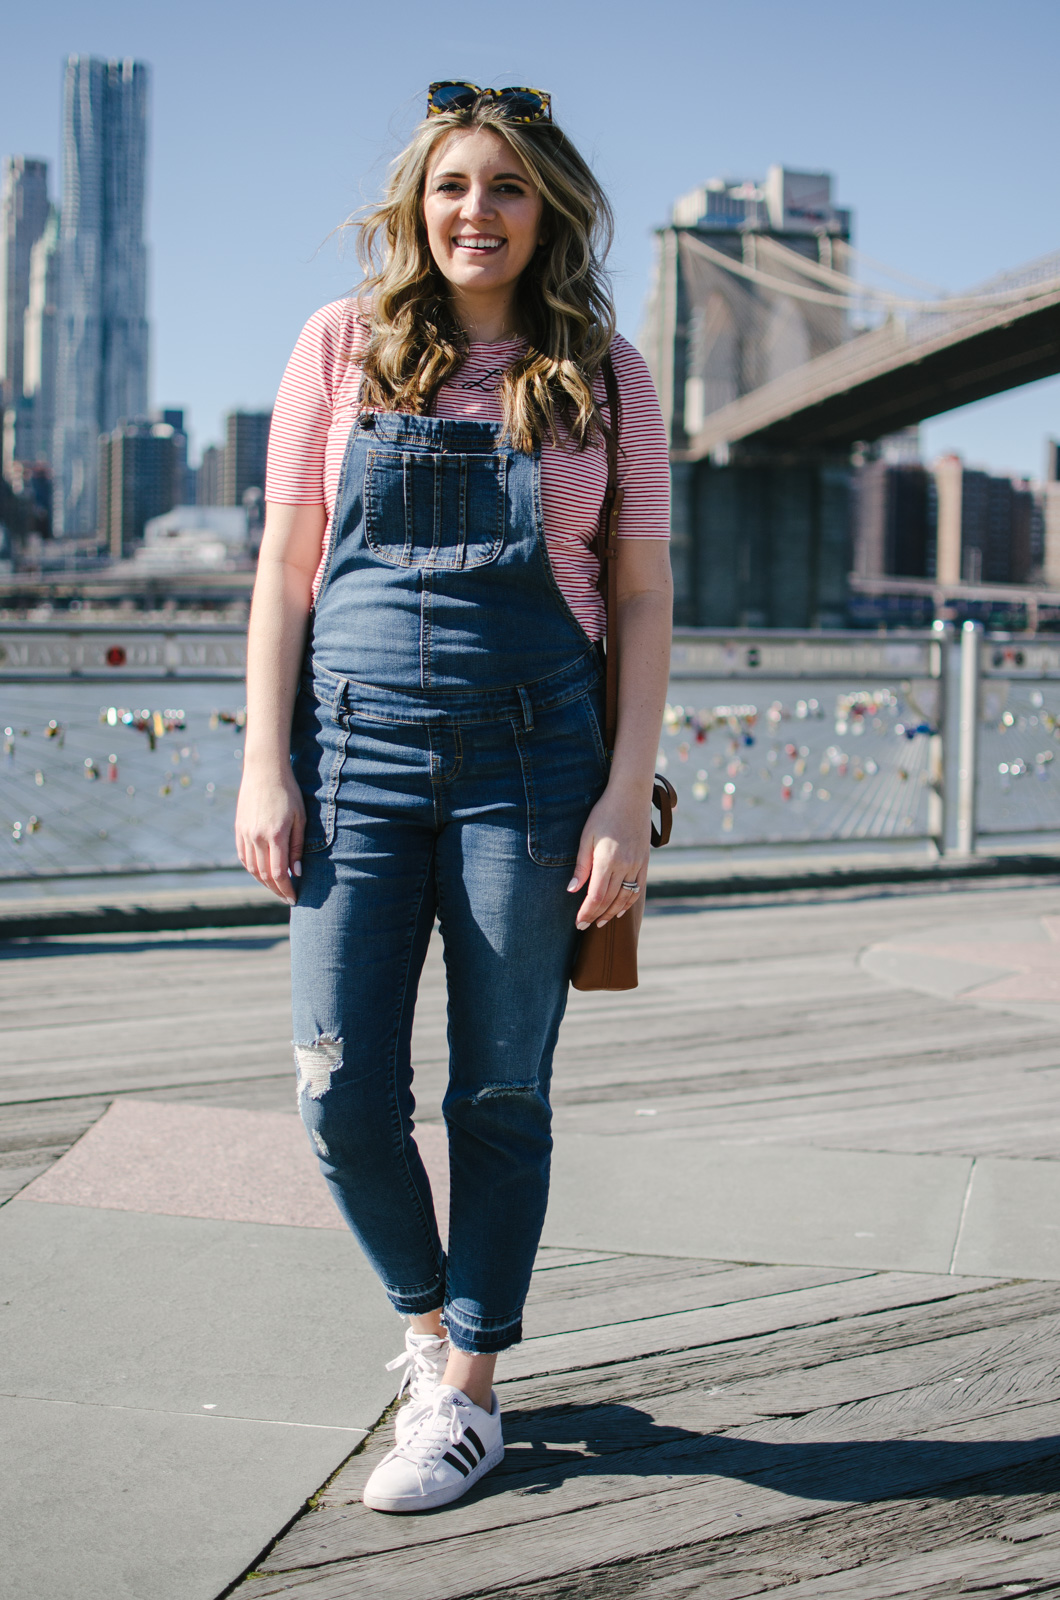 maternity overalls outfit - how wear maternity overalls | bylaurenm.com